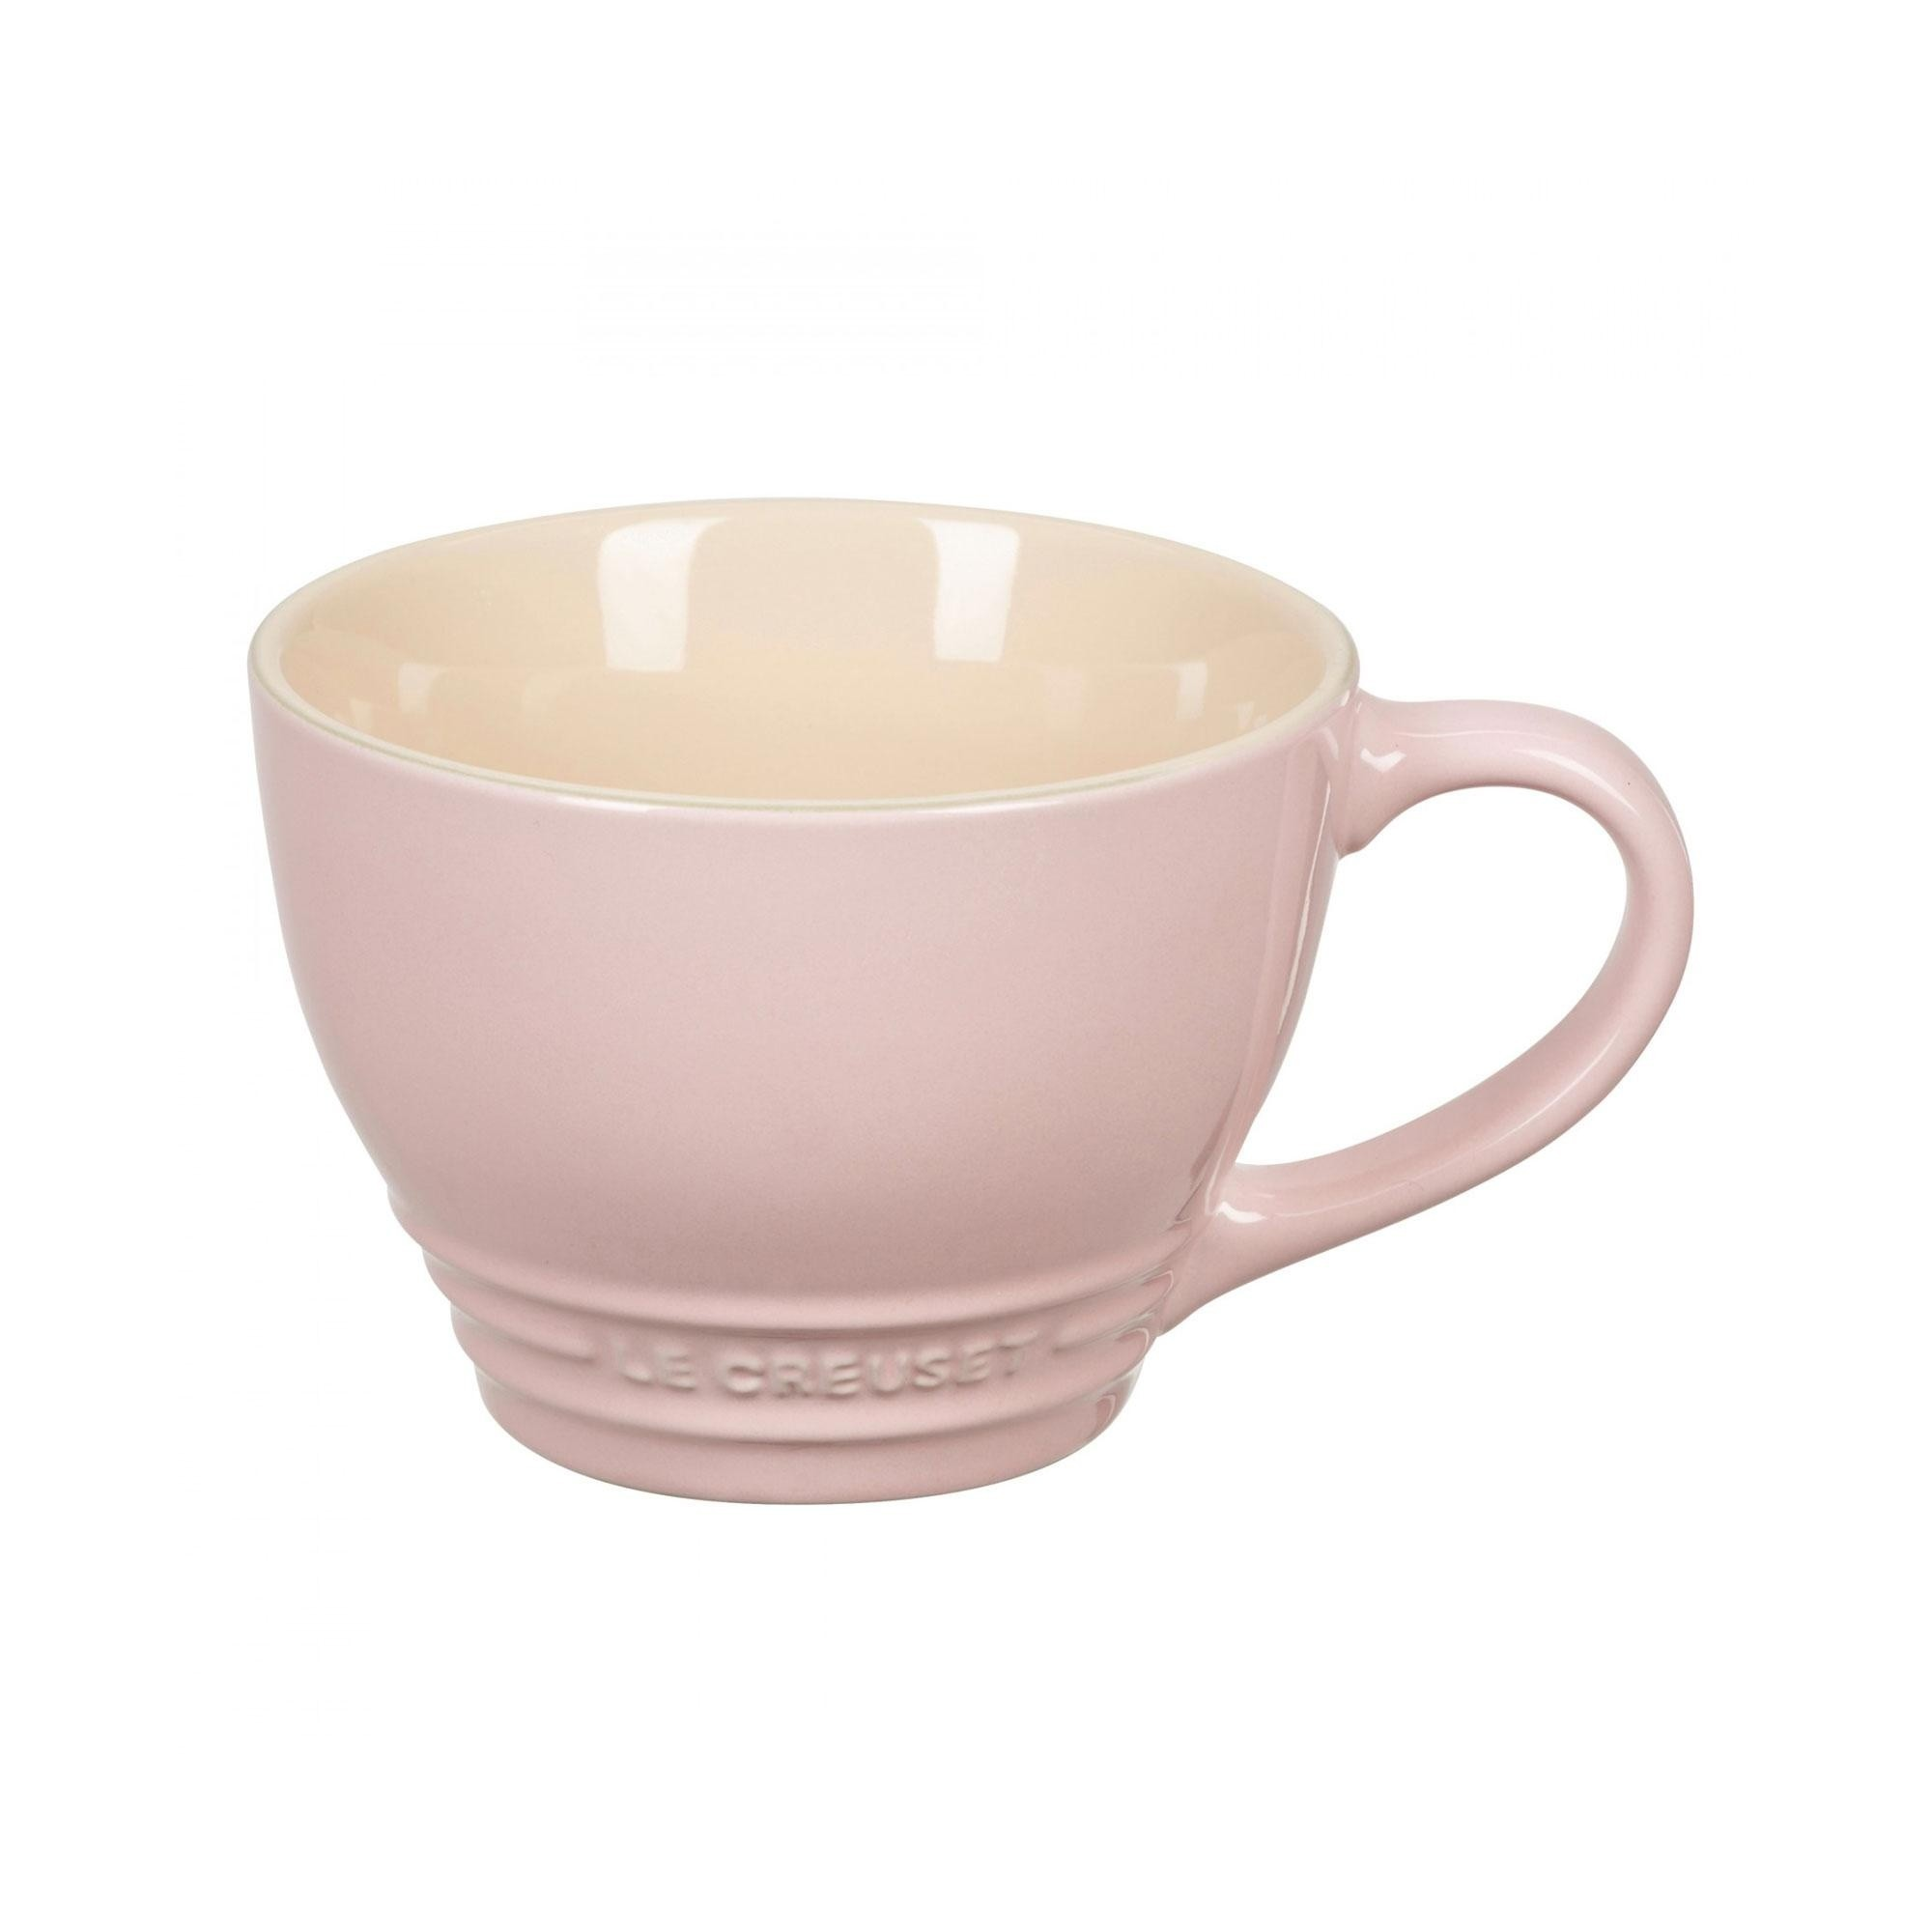 Le Creuset Limited Edition Cuccinote 400ml Chiffon Pink